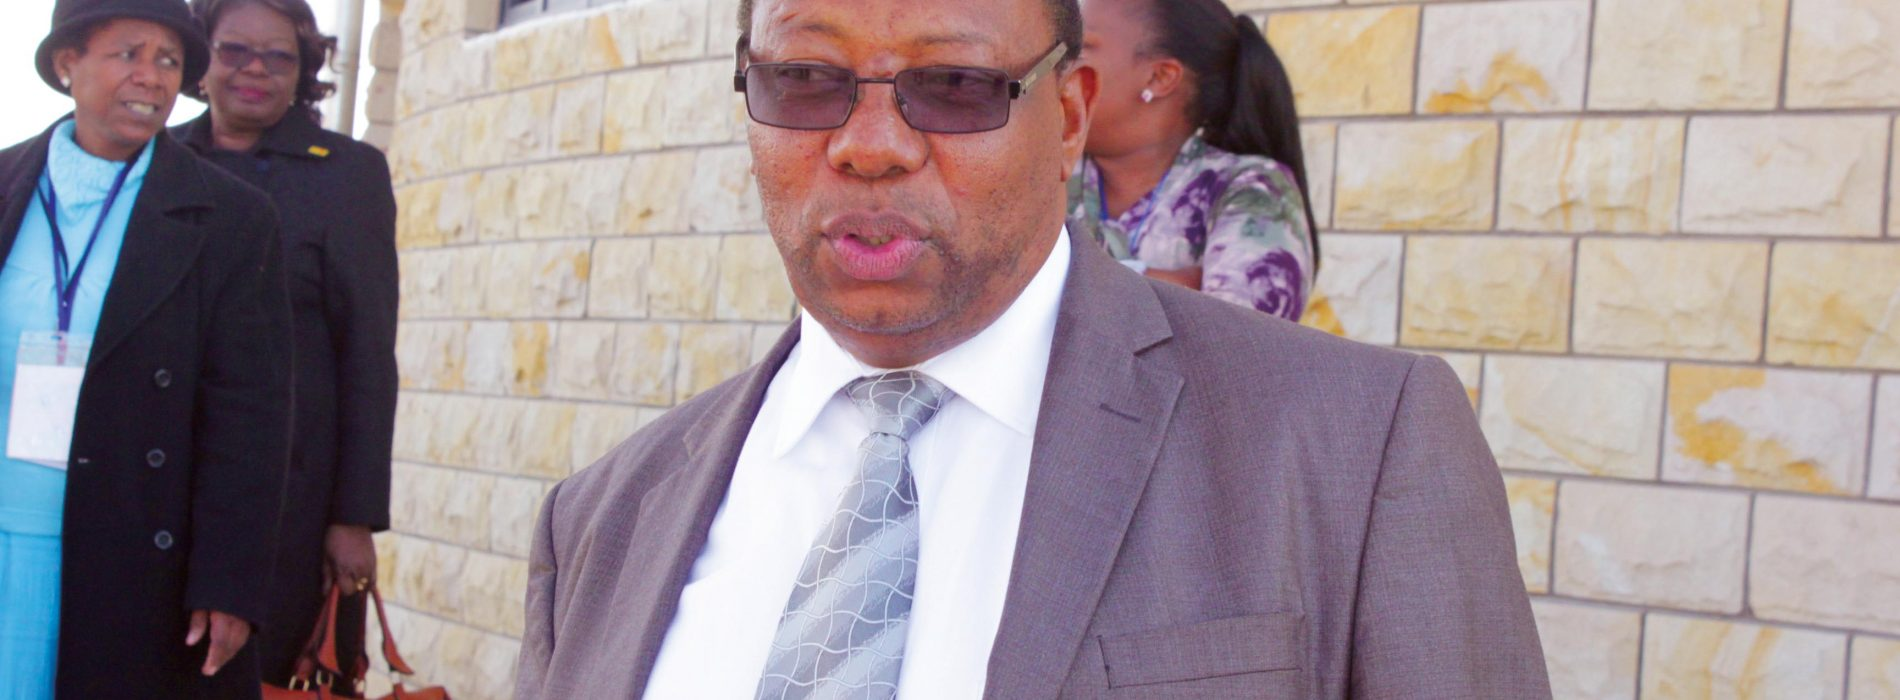 Kholumo kicked out of parliament